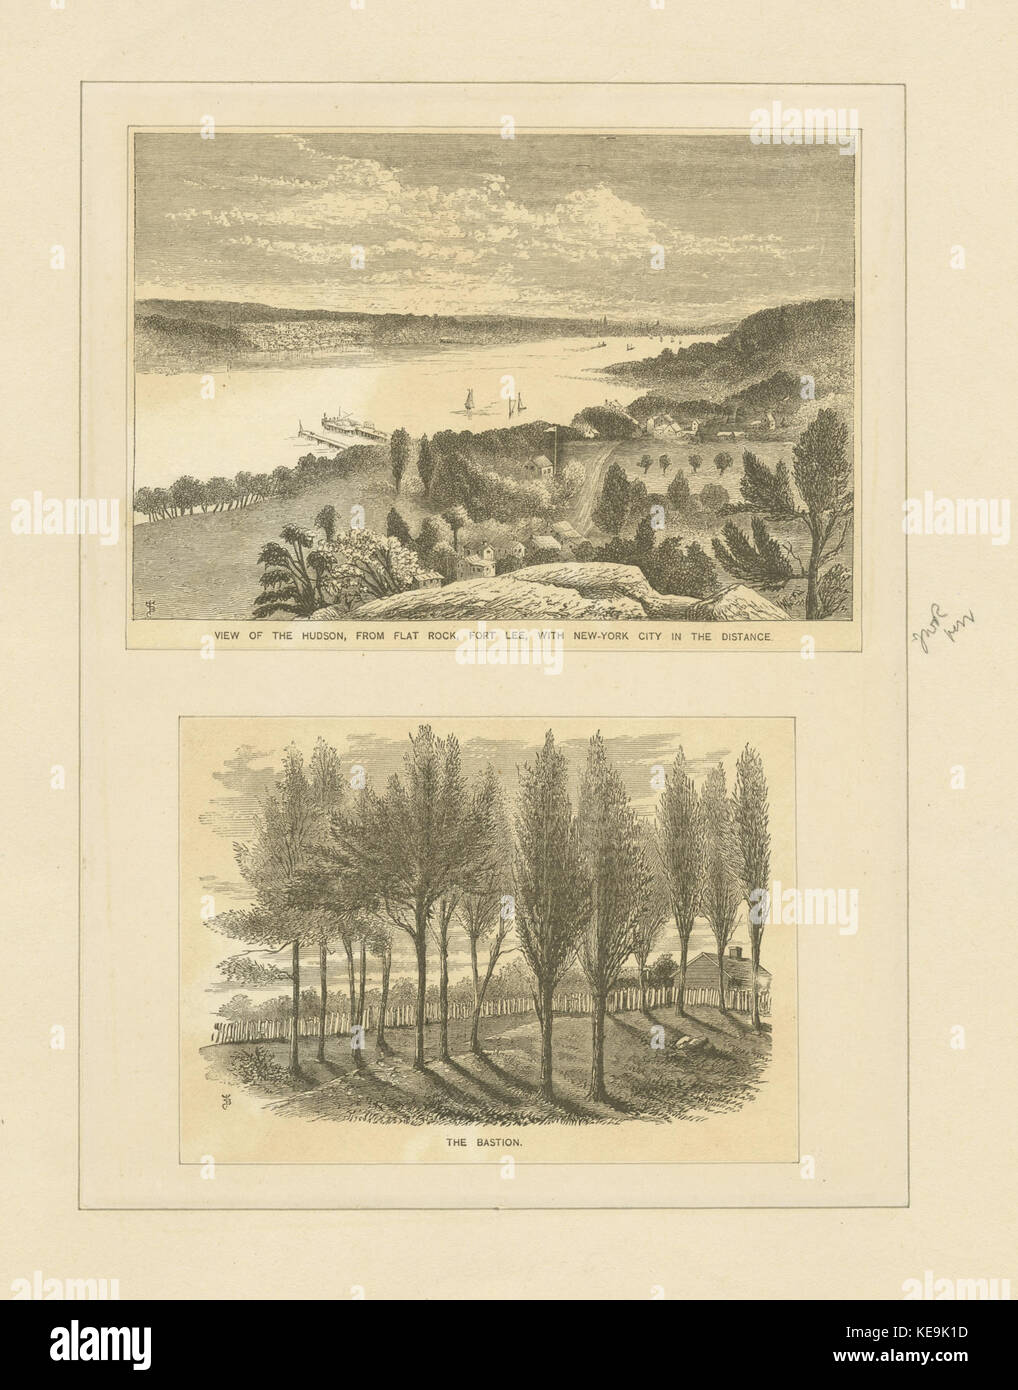 View of the Hudson, from Flat Rock, Fort Lee, with New York City in the distance; The bastion (NYPL b13512822 424392) - Stock Image